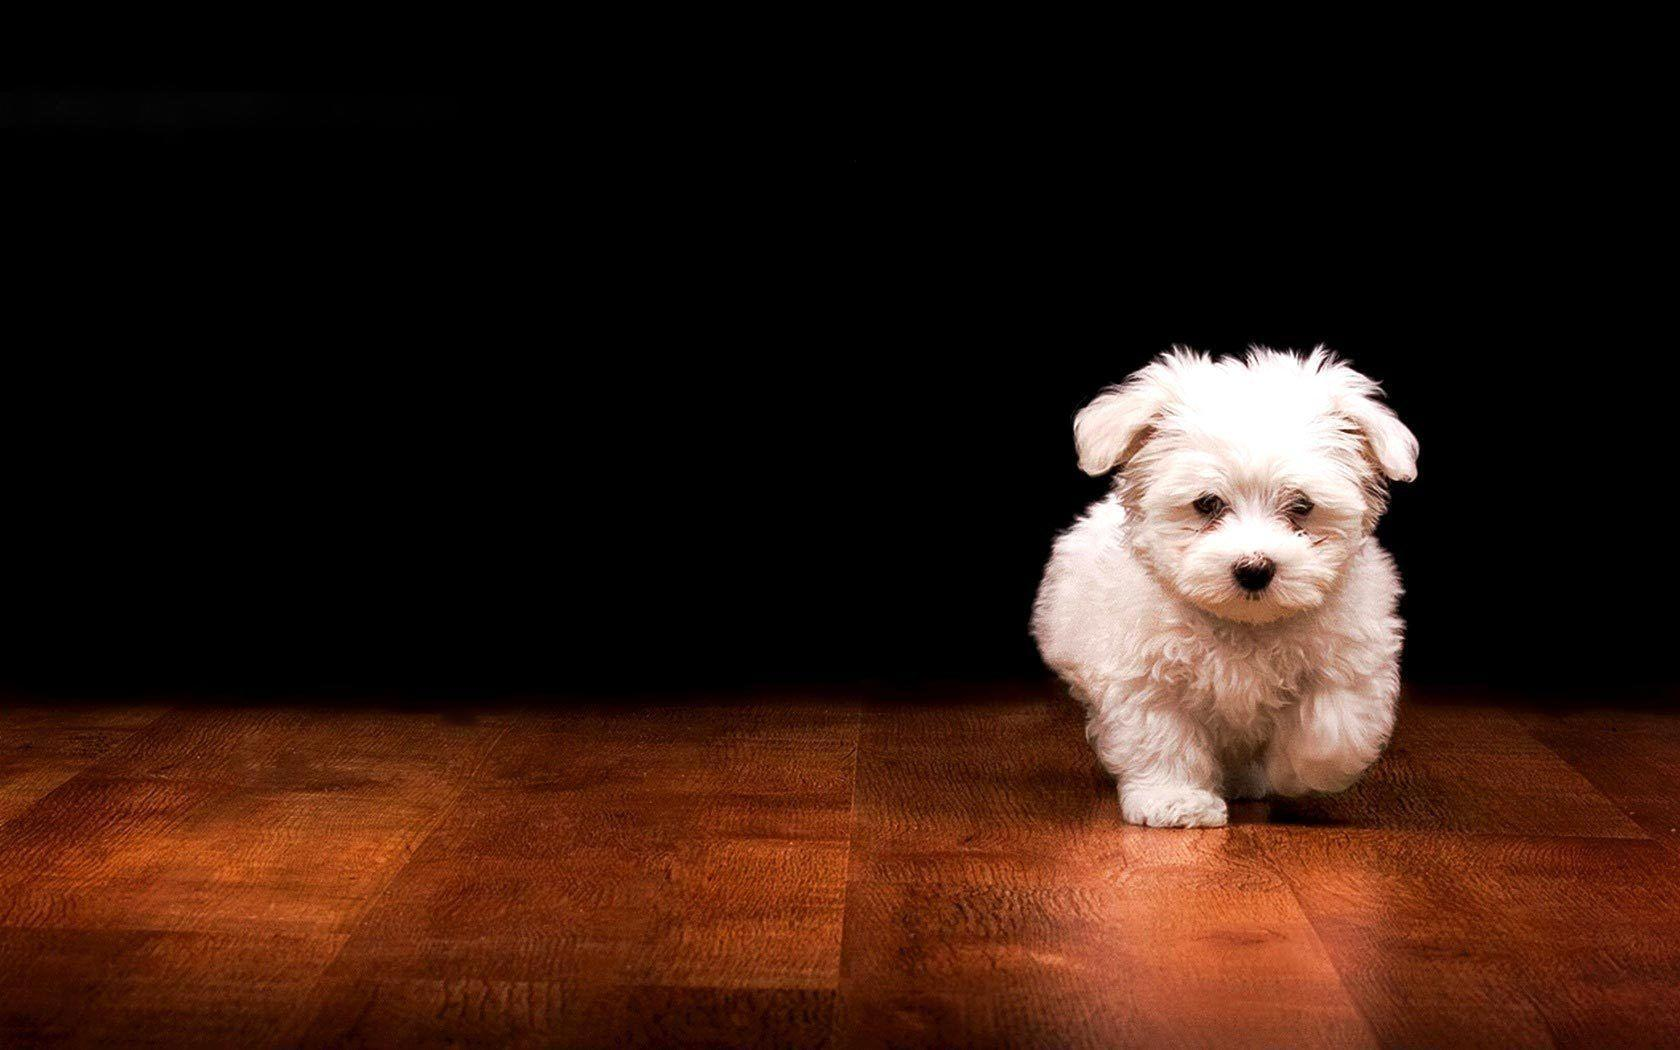 Wallpapers For > Cute Black Puppies Wallpaper